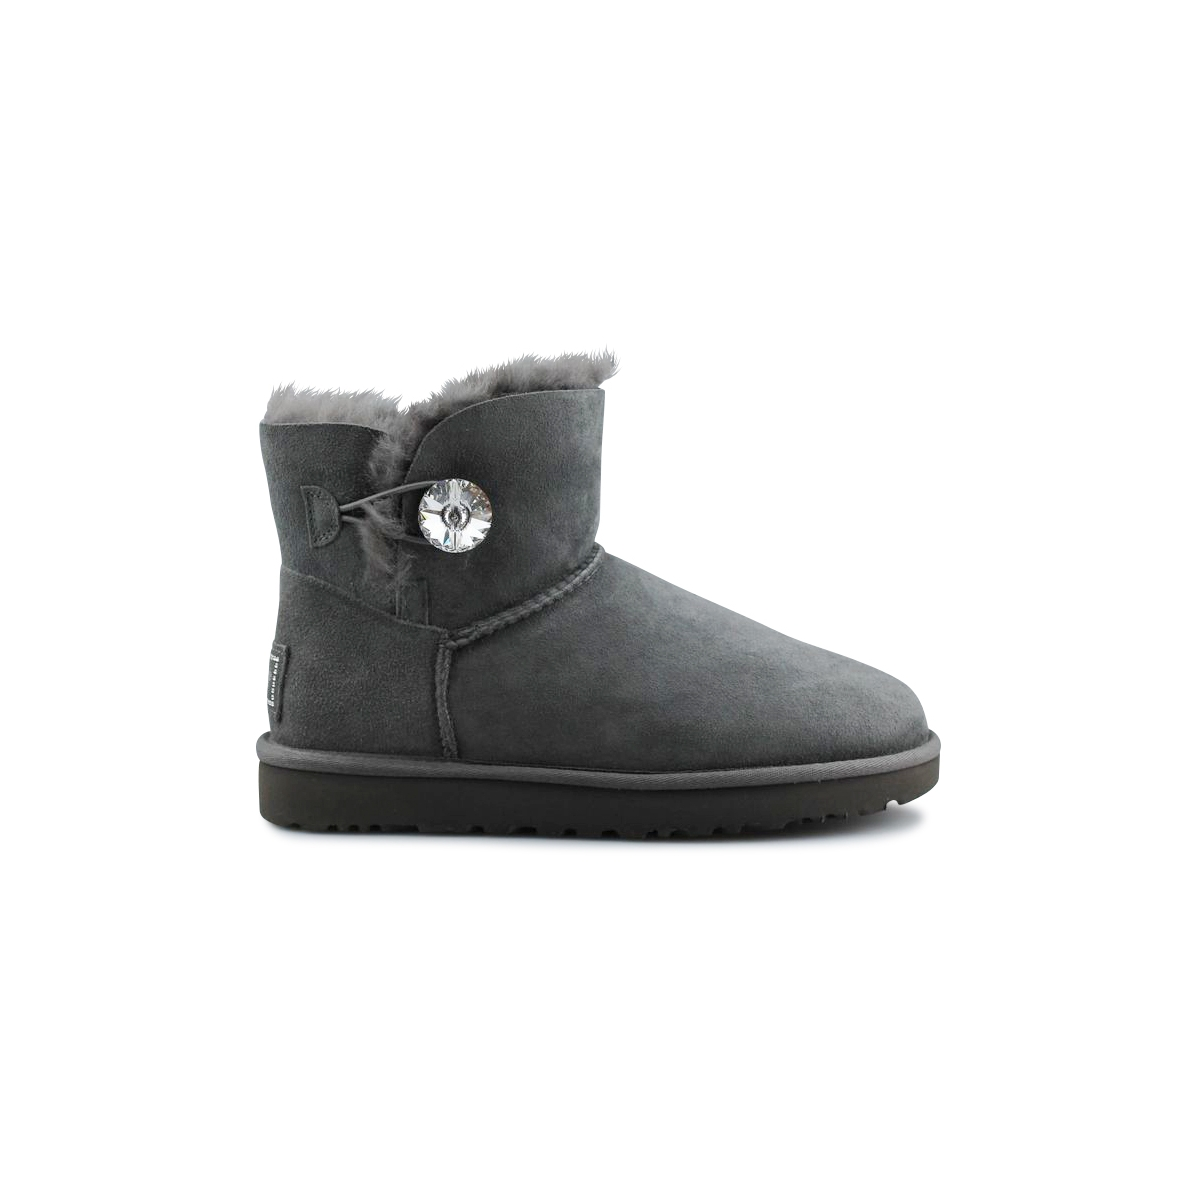 dae4a0acdb1 Ugg Bailey Bling Amazon - cheap watches mgc-gas.com